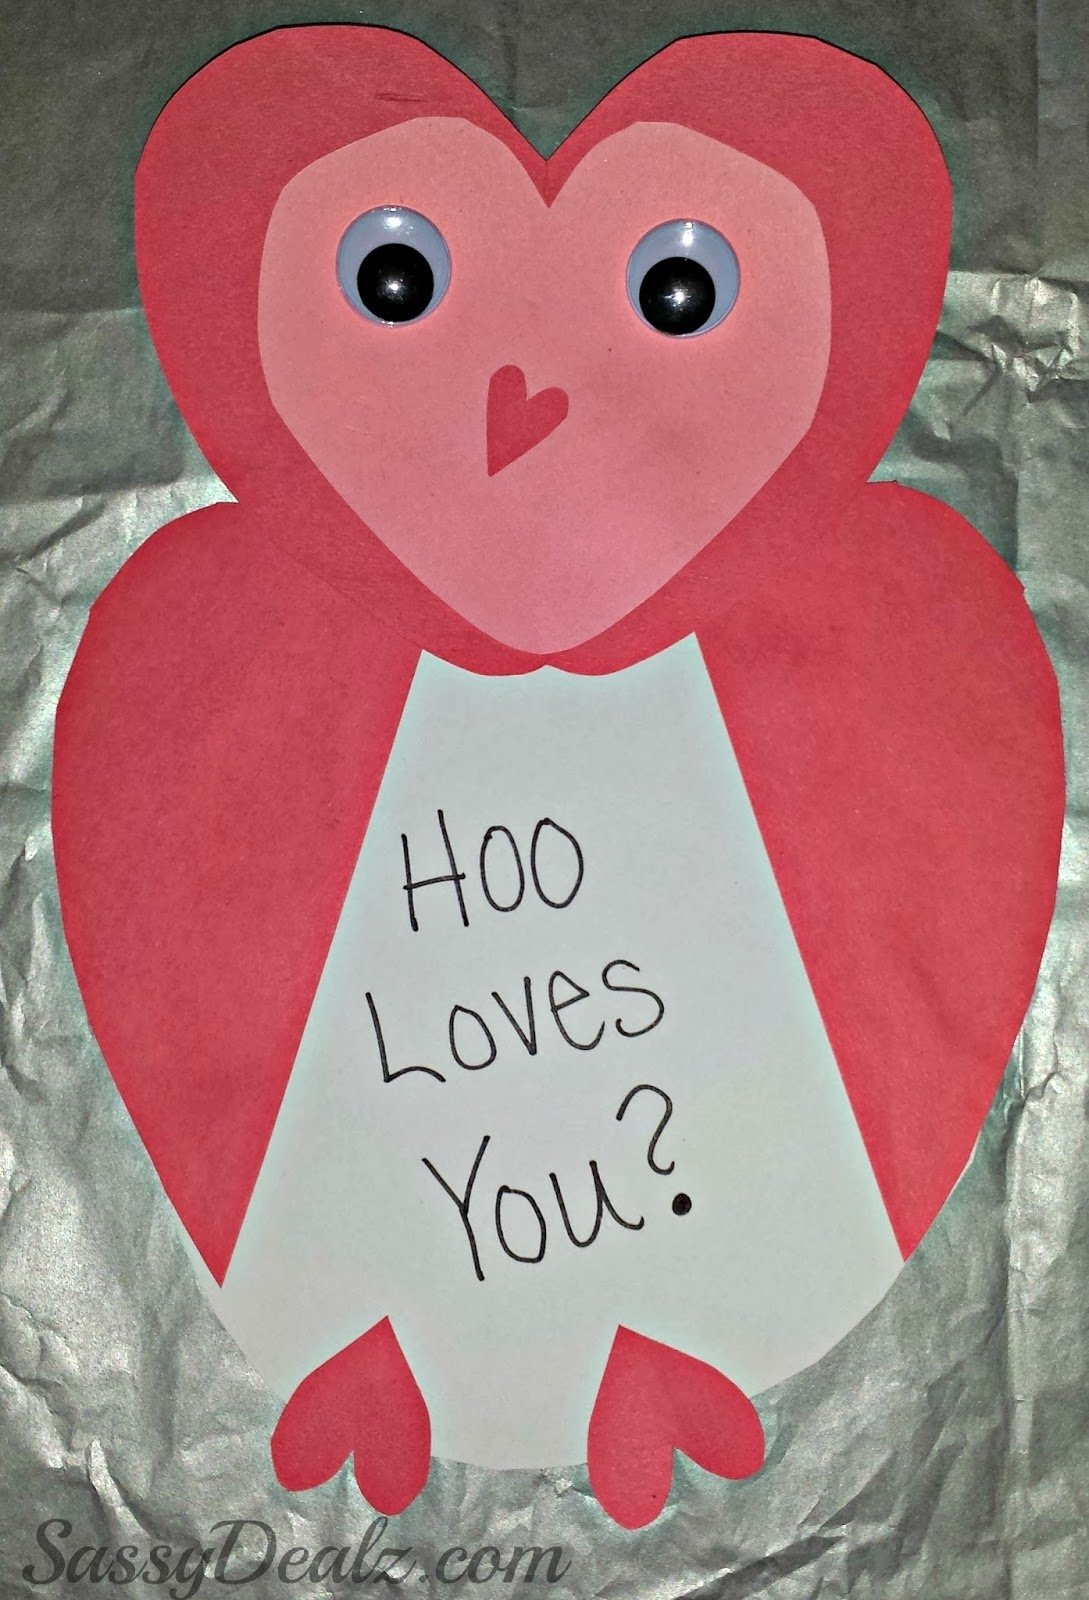 10 Attractive Valentine Card Ideas For Kids valentines day arts and crafts for kids quotes wishes for 3 2020